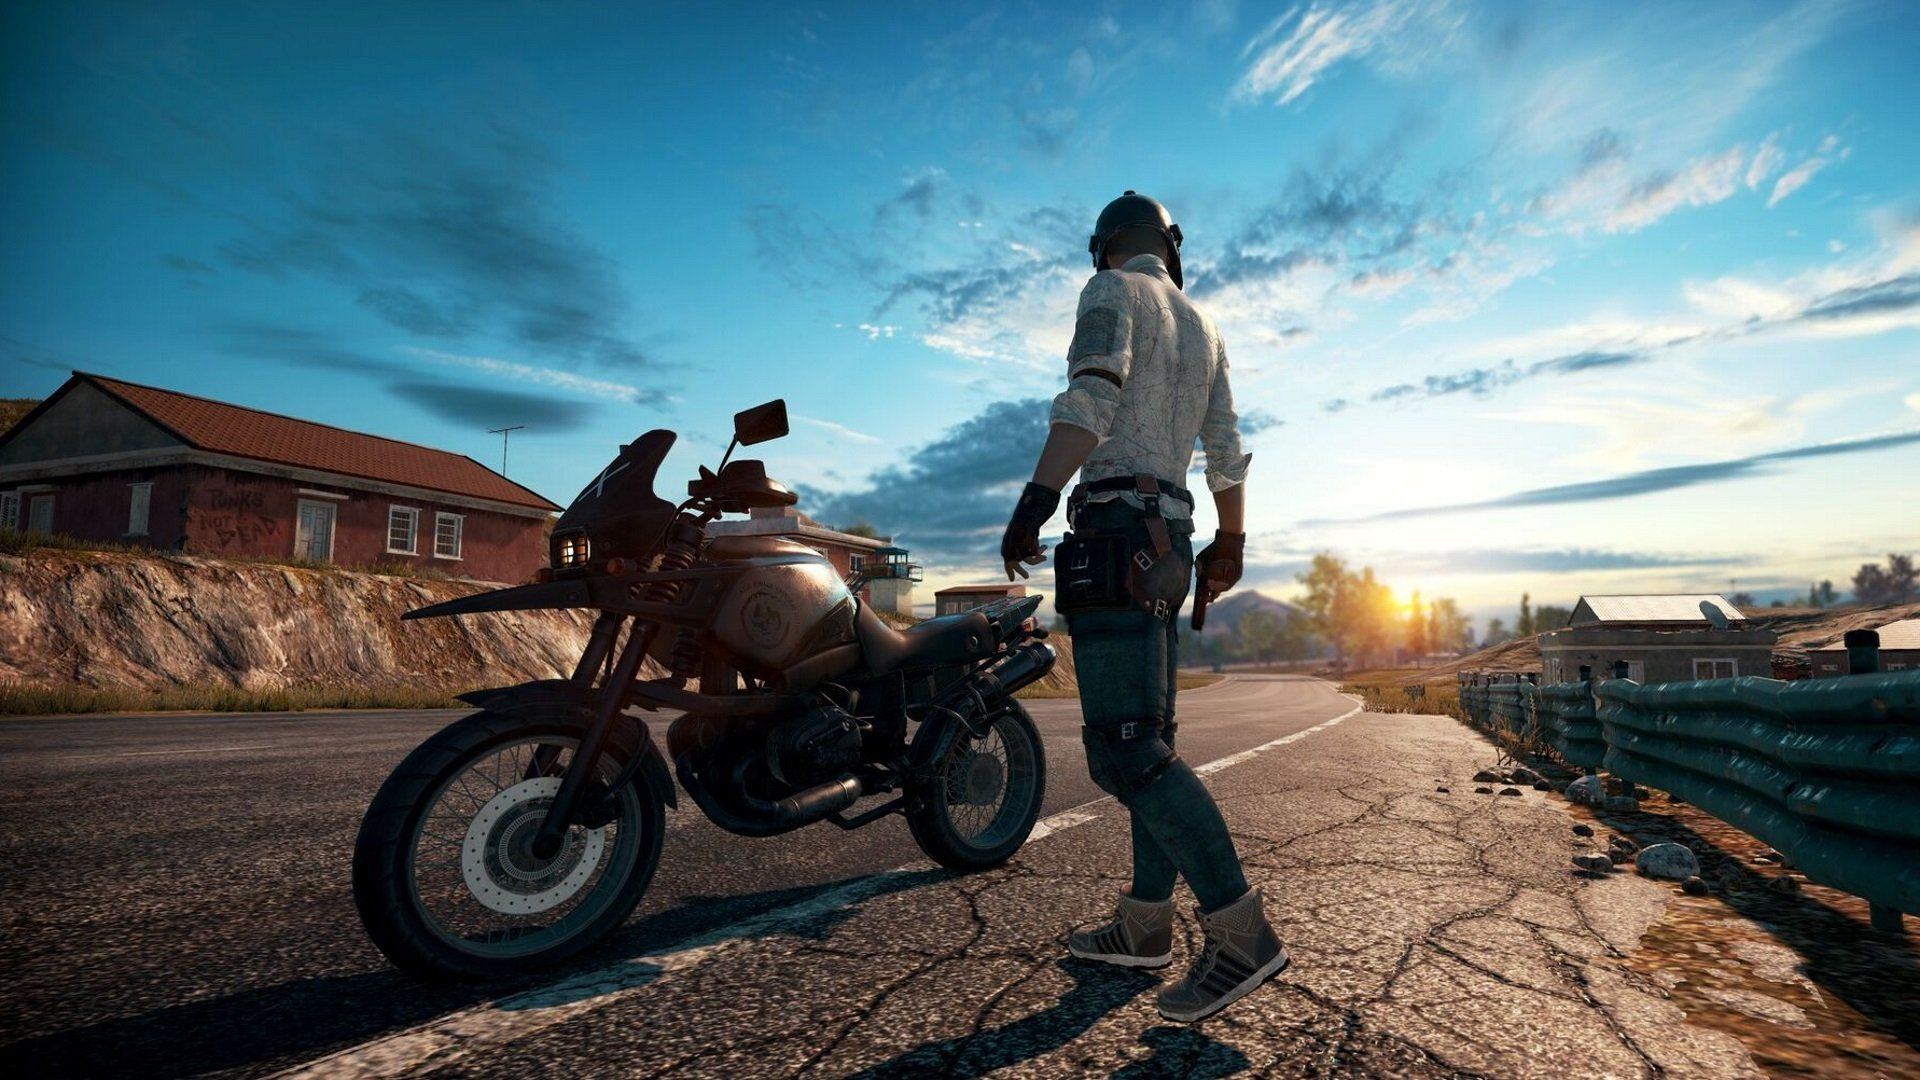 Best Pubg Wallpapers Hd Download With 4k 1080p Resolution For Mobile And Desktop The Indian Wire